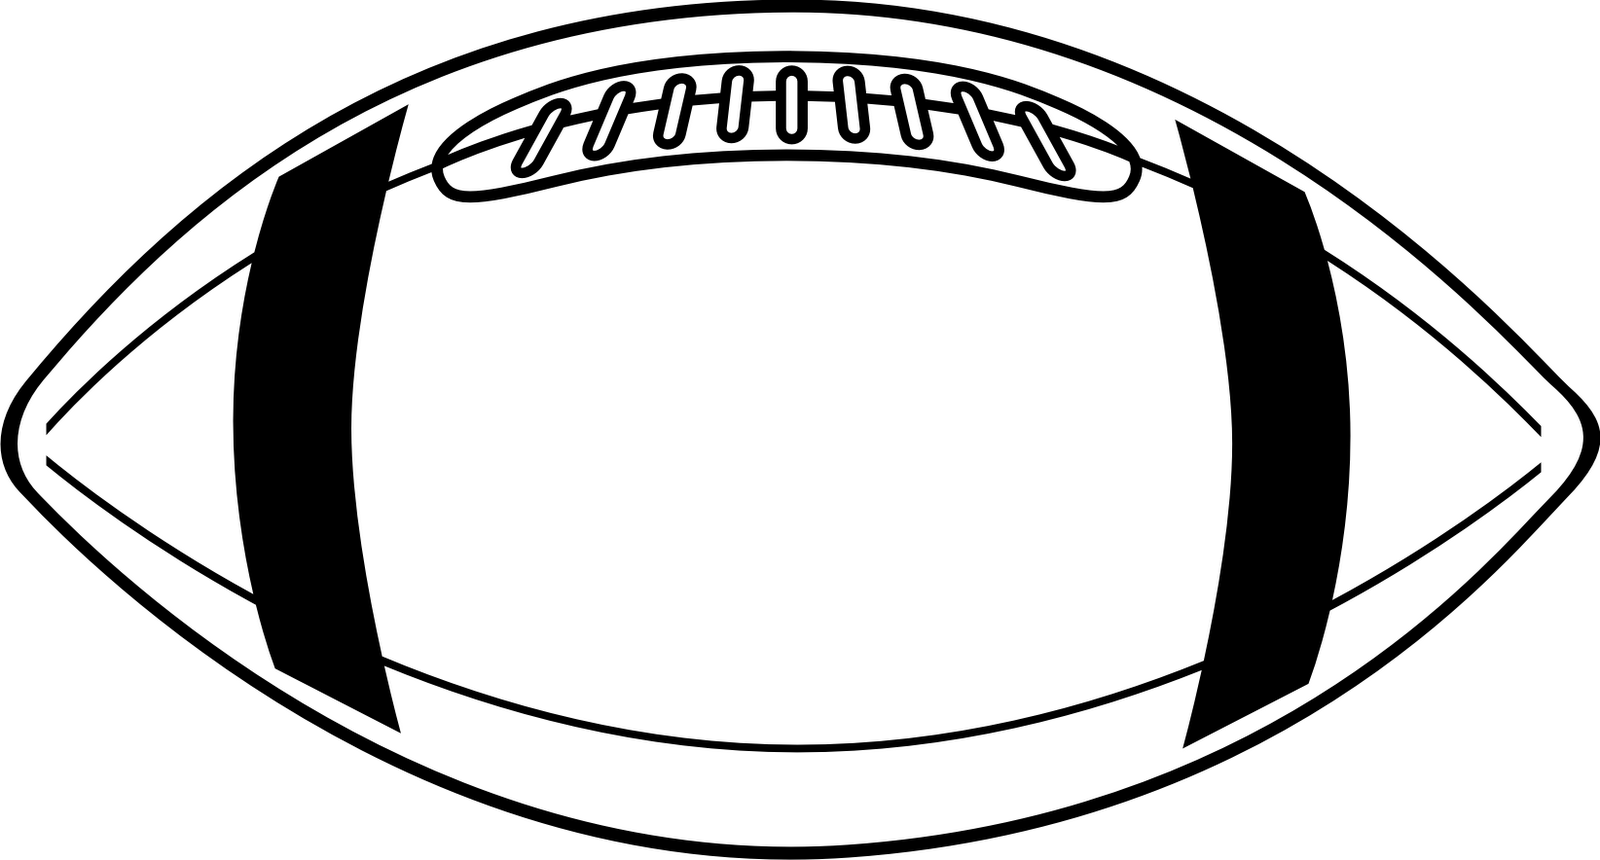 1600x860 Fans clipart sports jersey